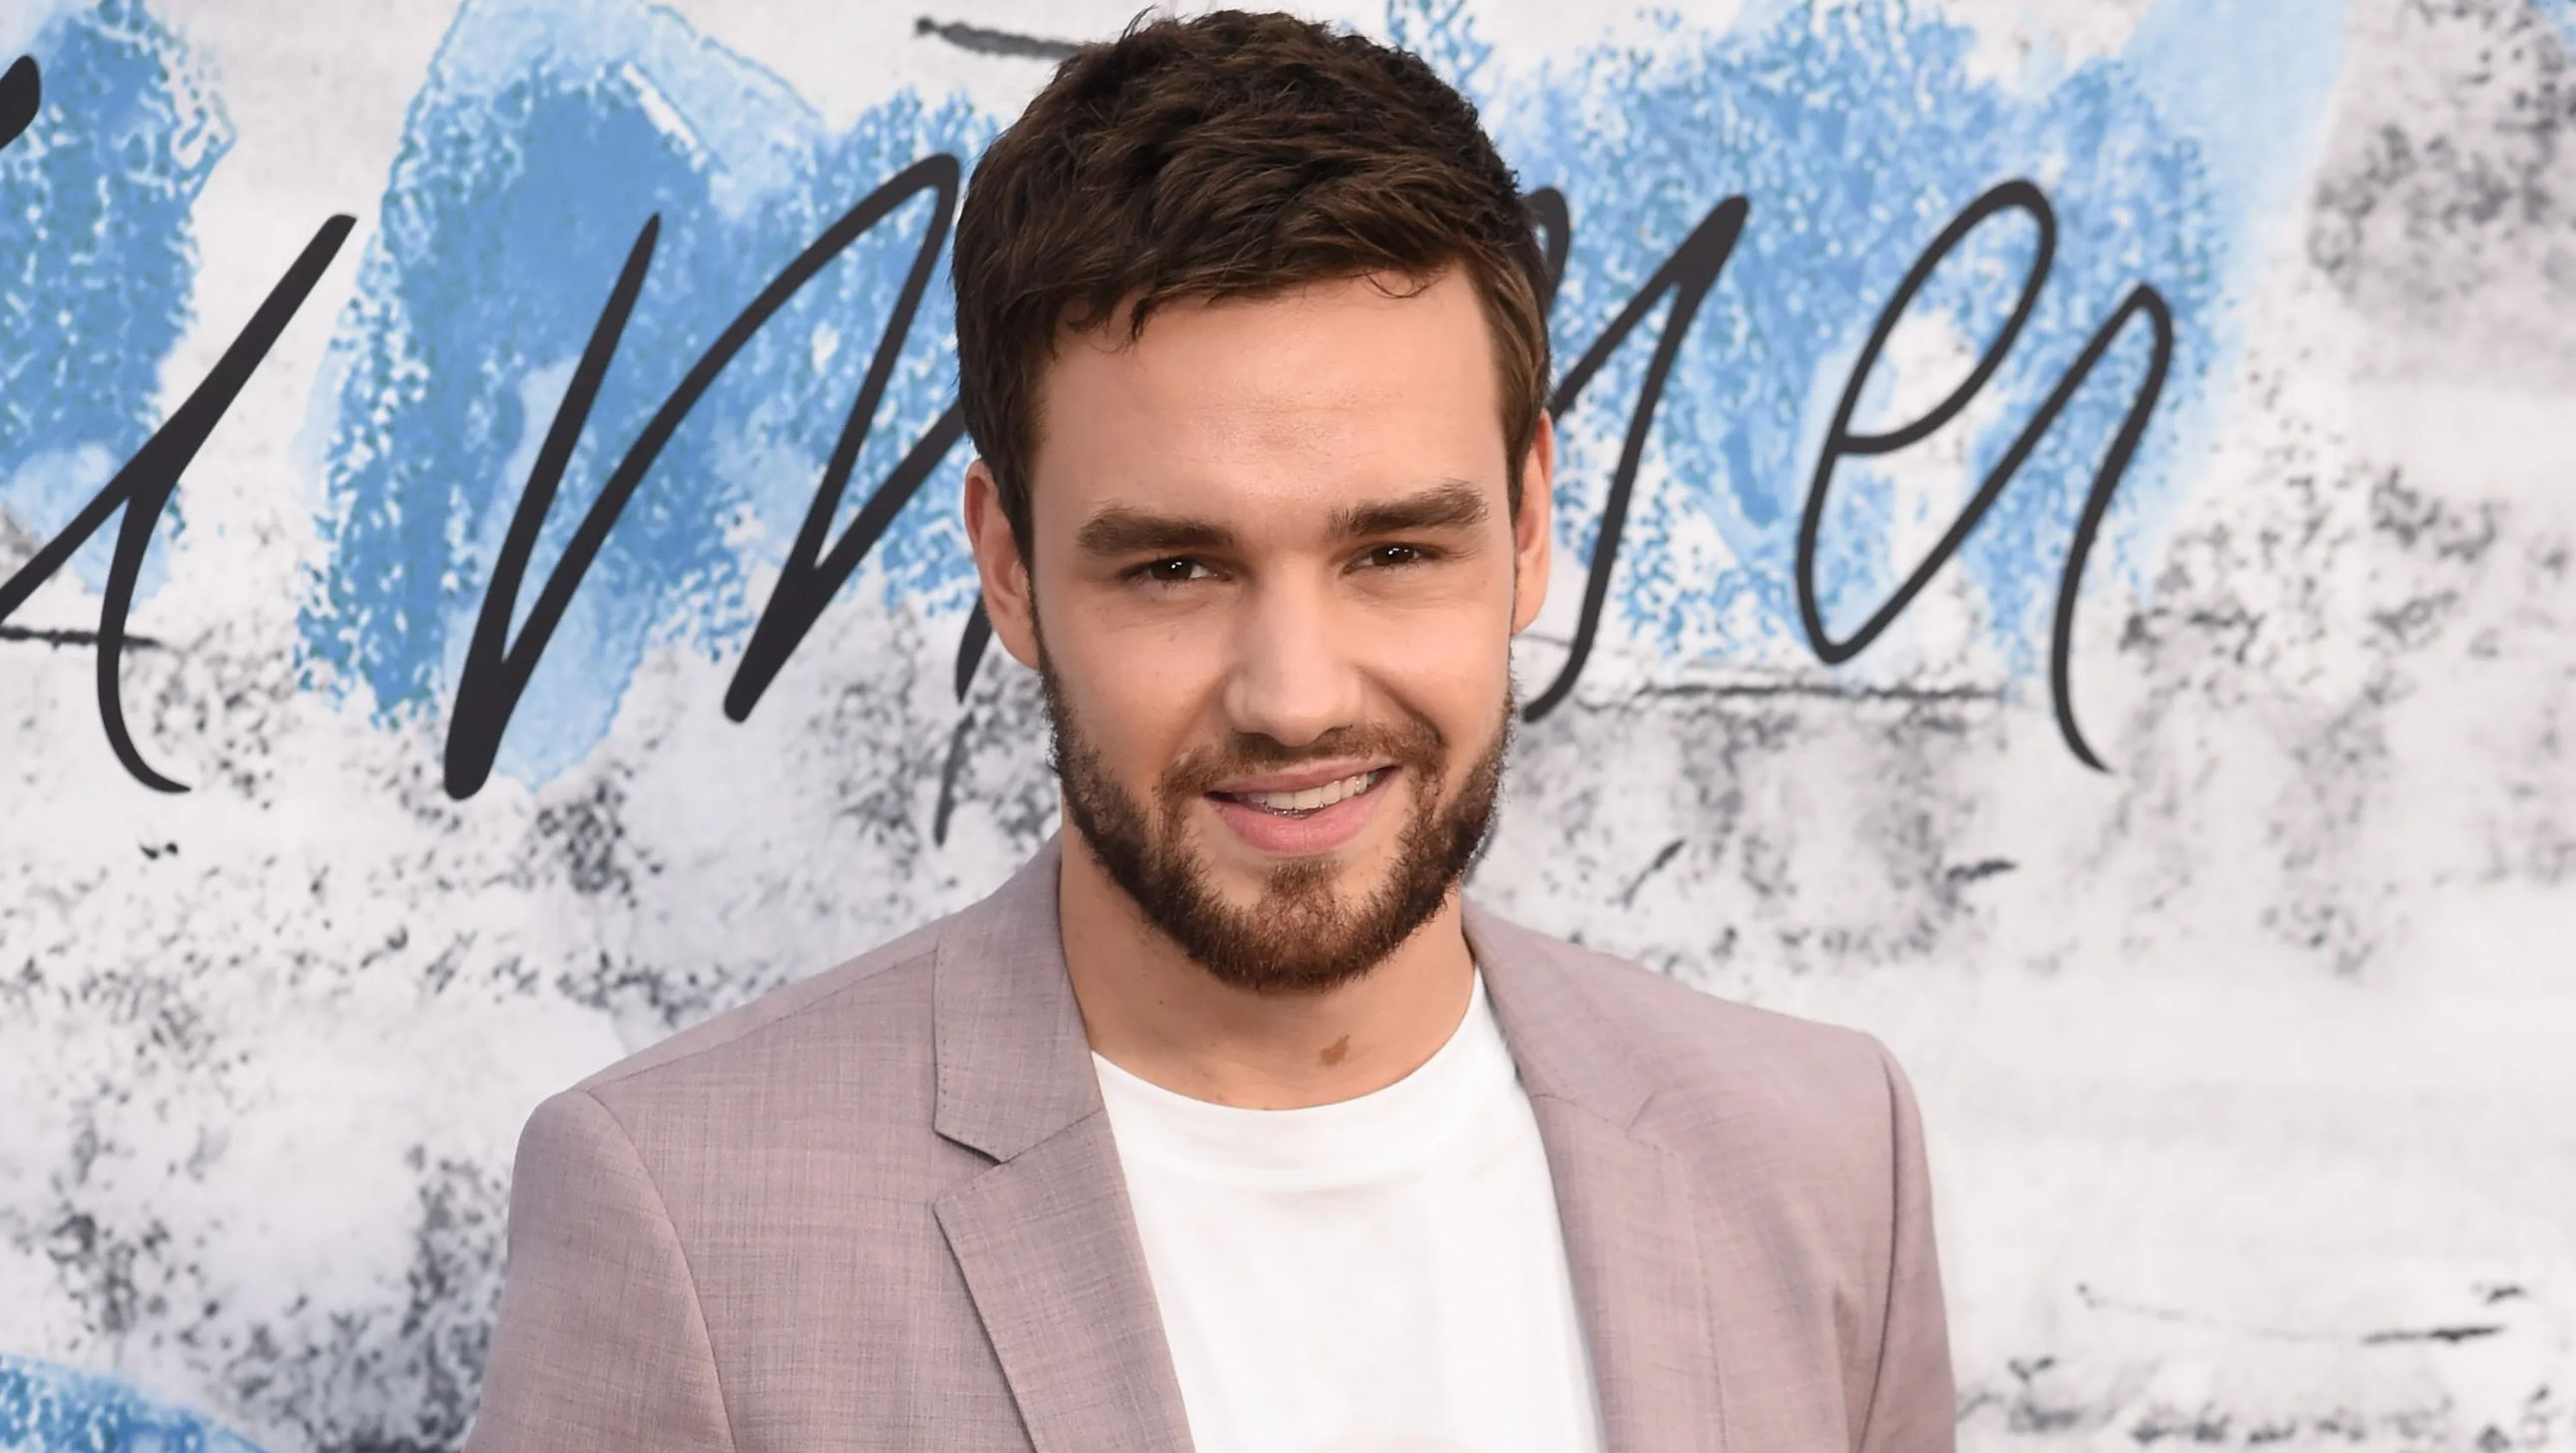 Liam Payne in a light pink suit